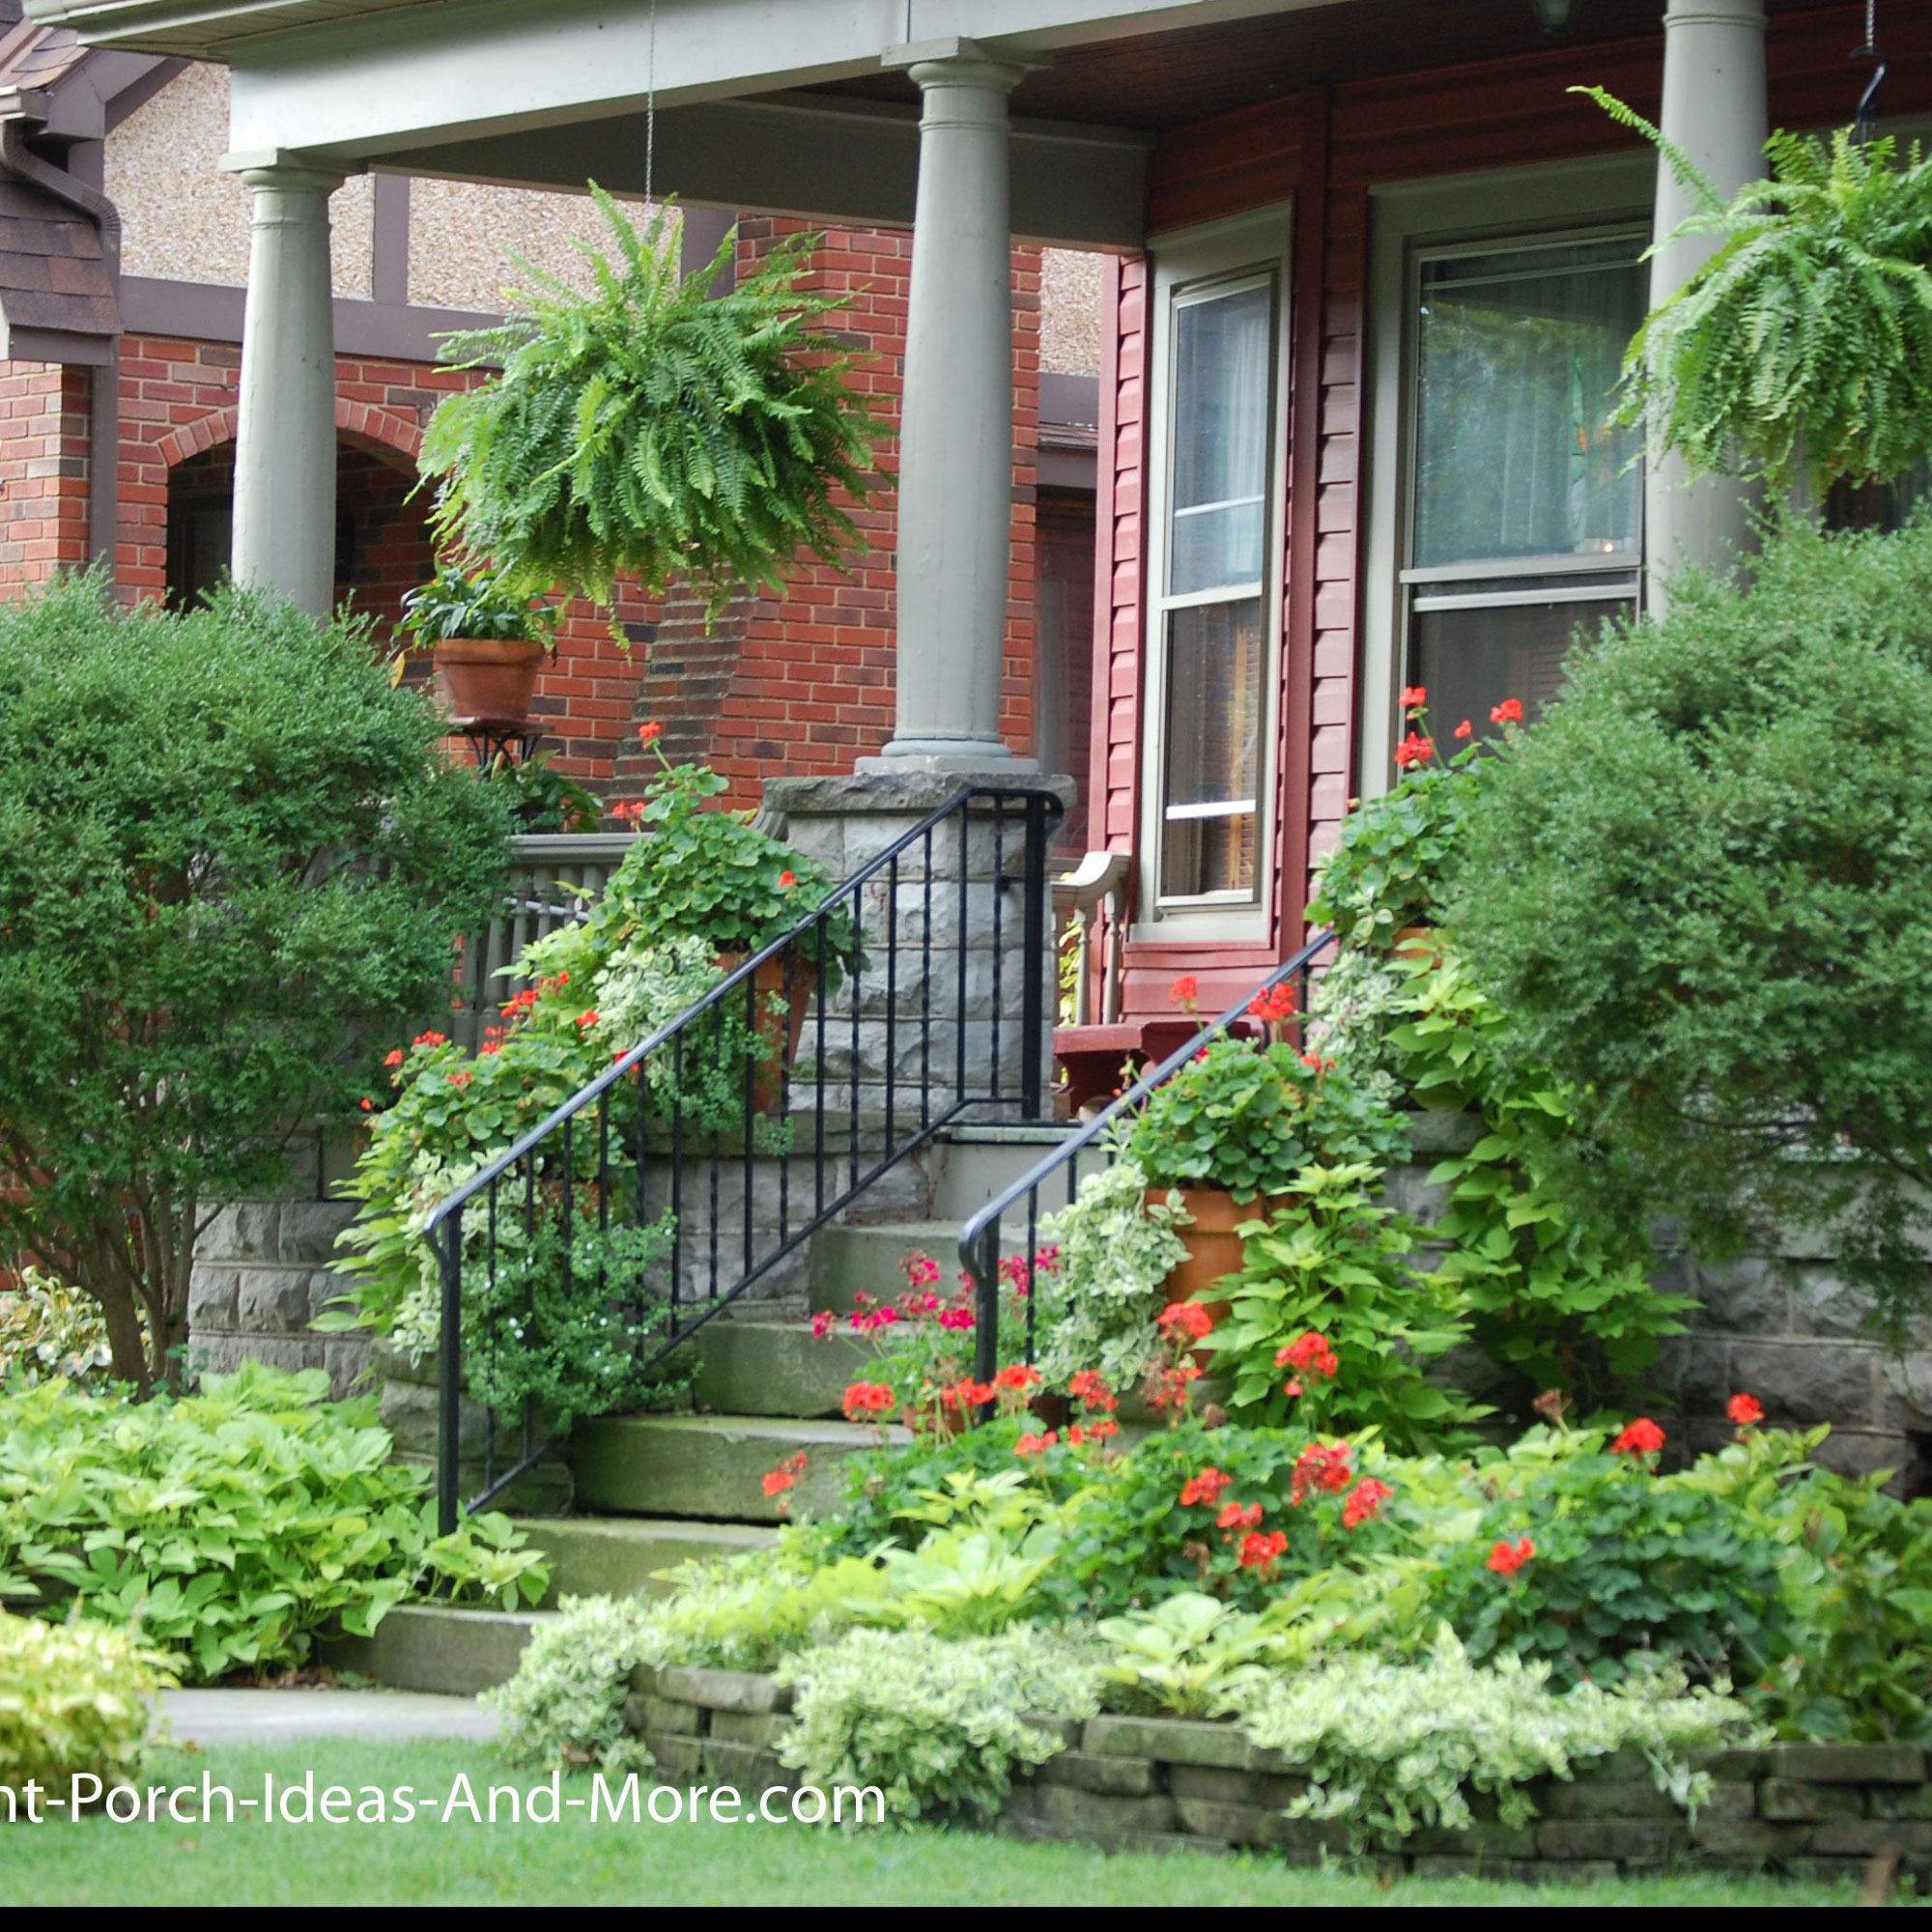 Porch landscaping ideas for your front yard and more for Design your landscape